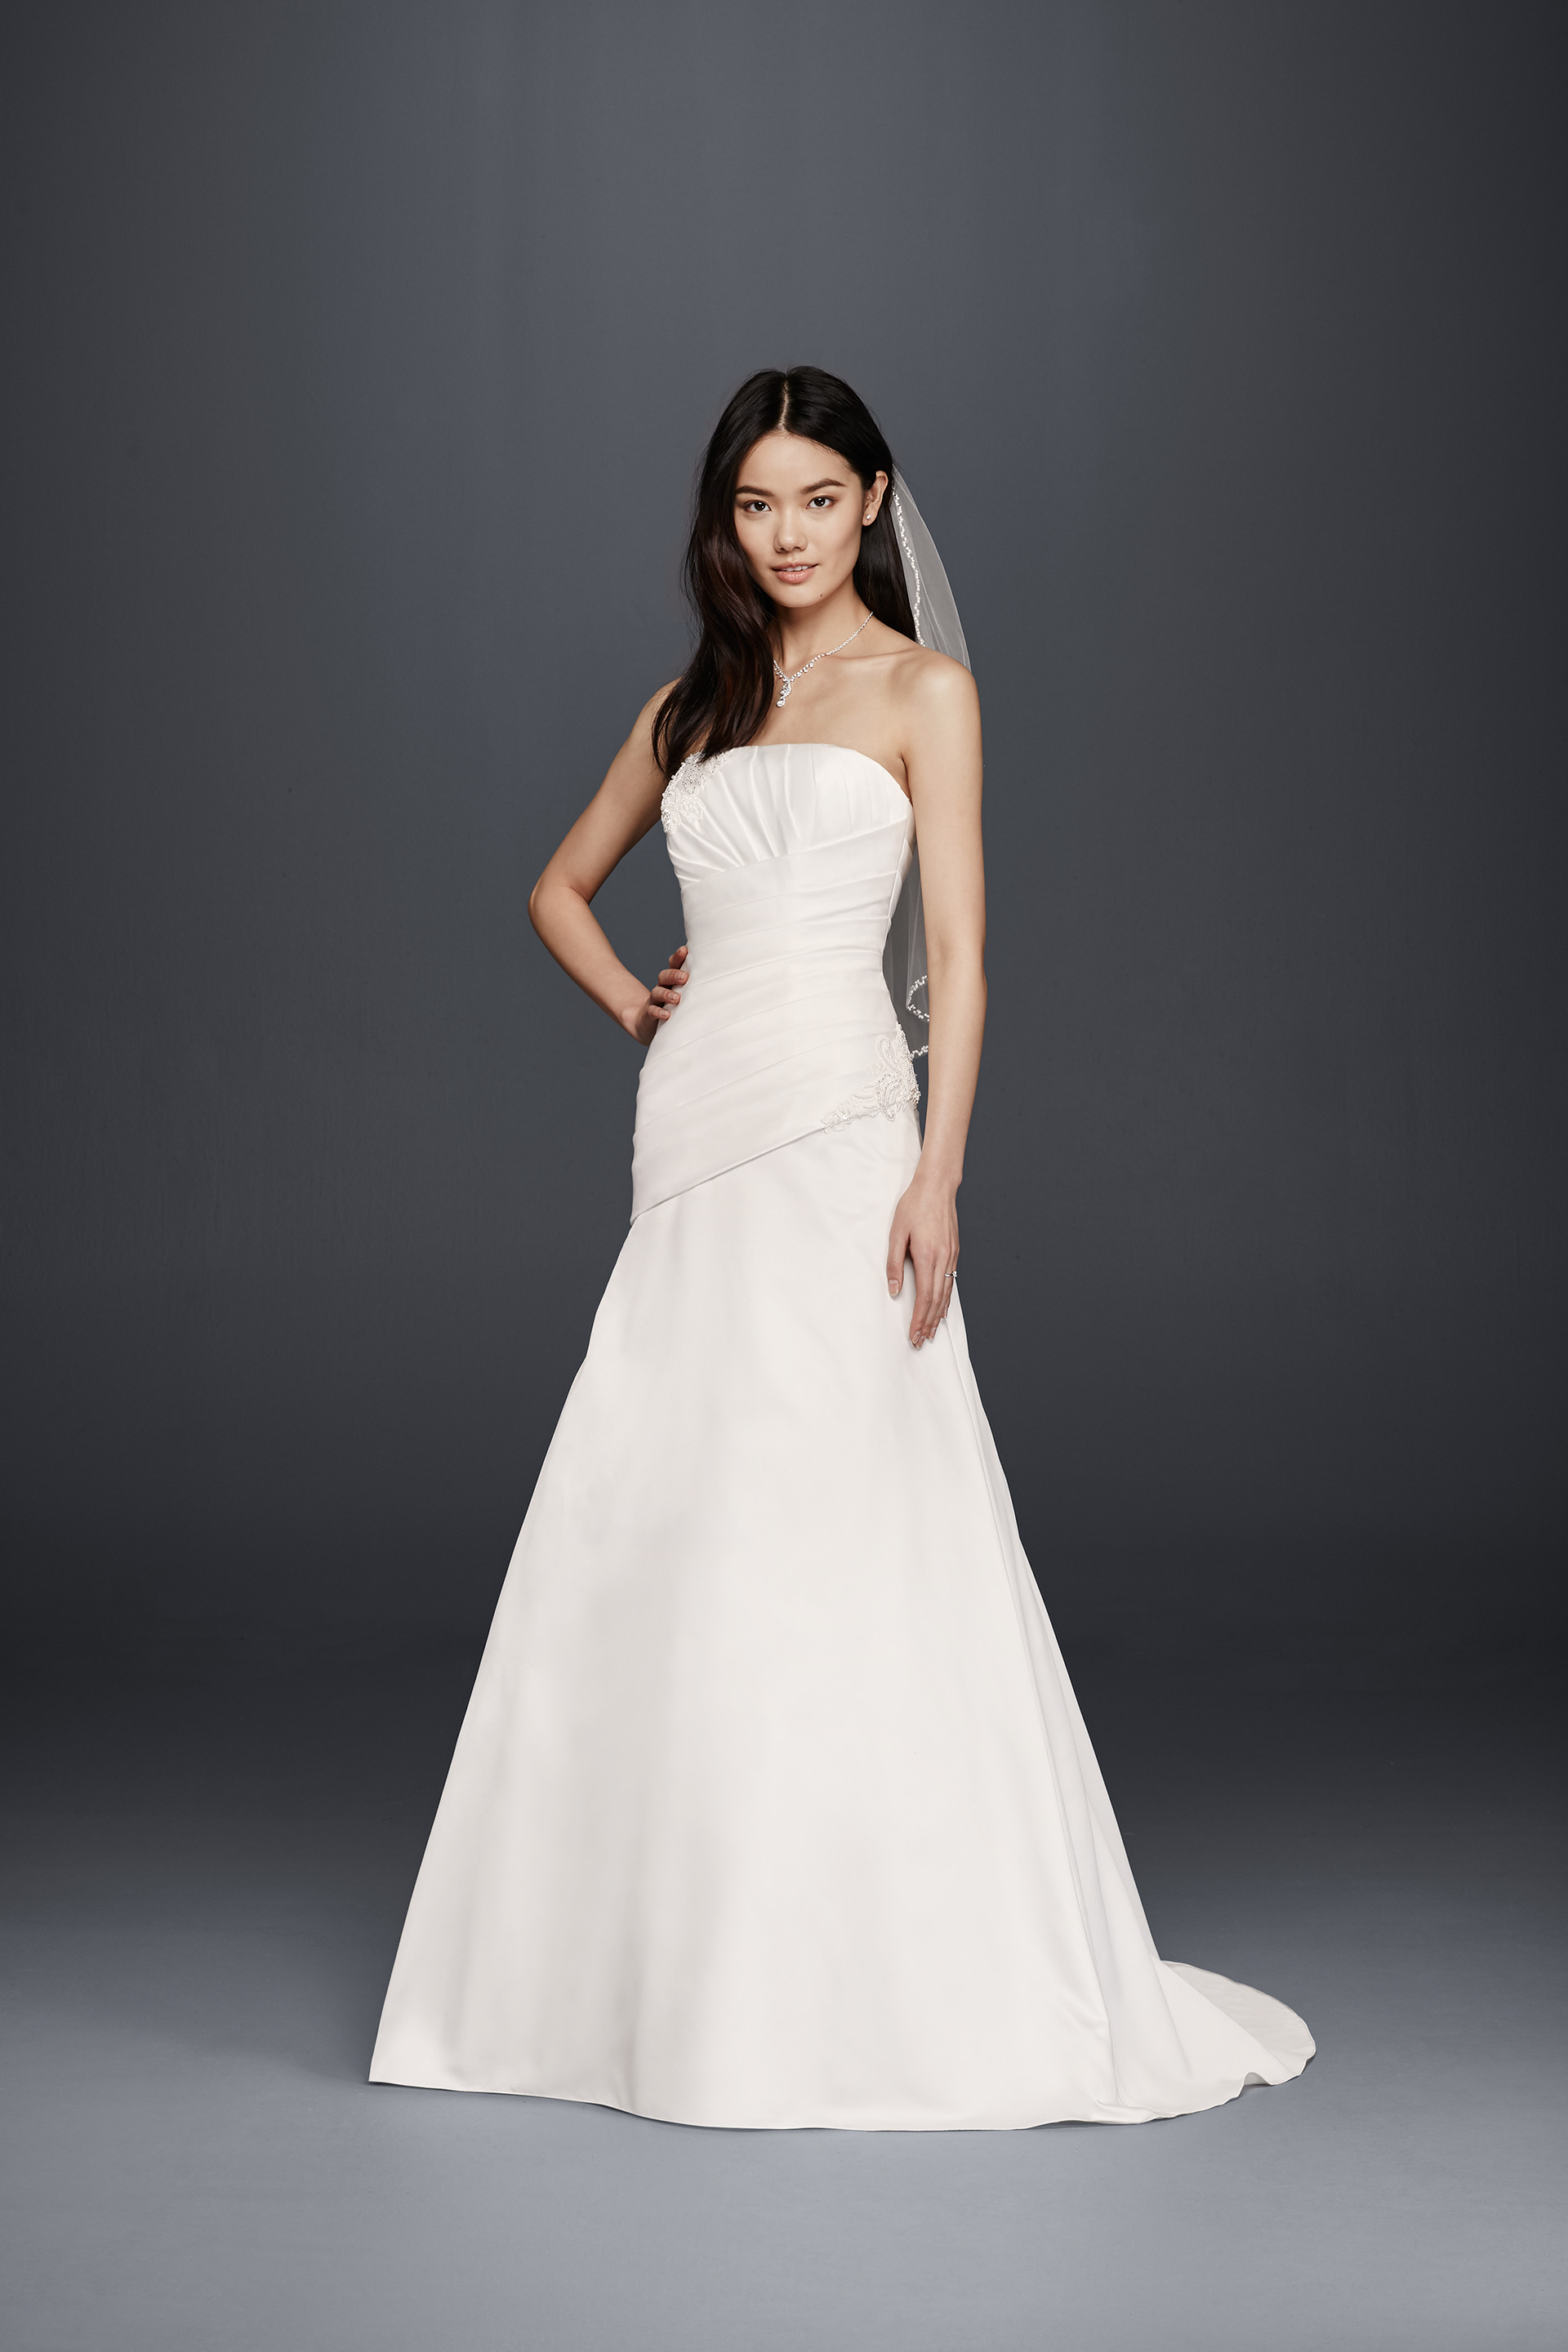 THE ONE WITH THE CHEAP WEDDING DRESS - BLOVED Blog